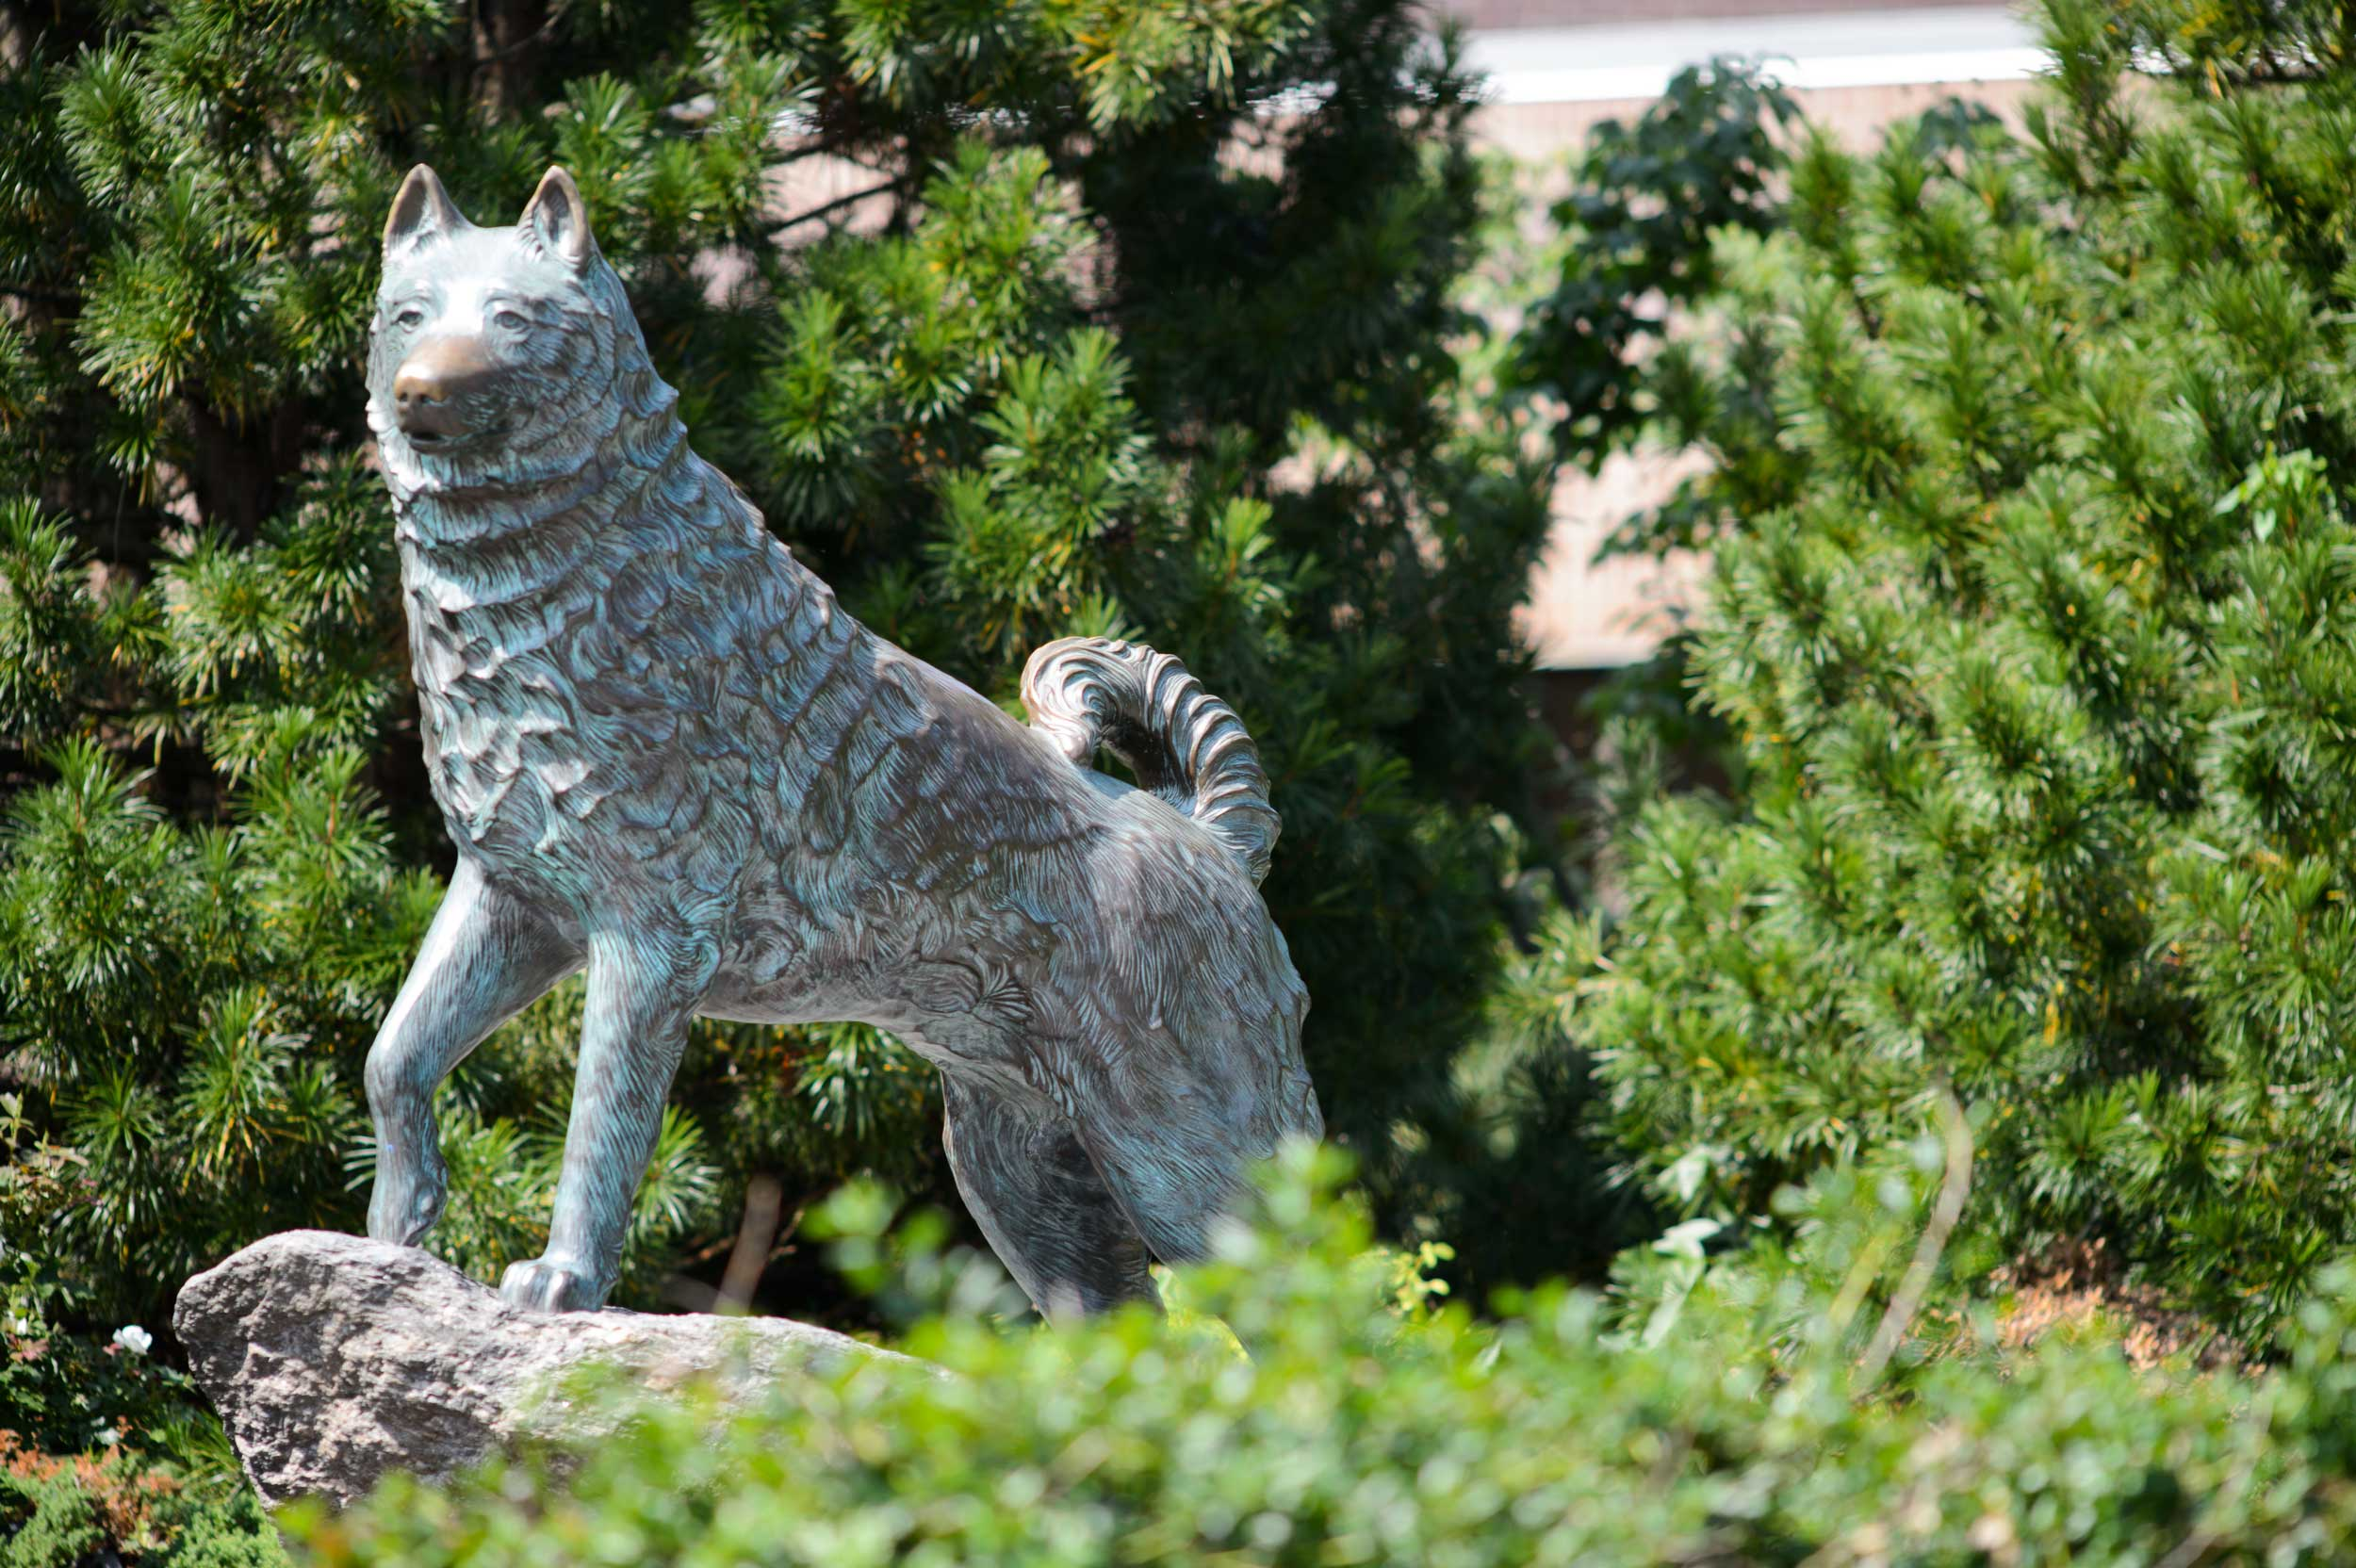 Jonathan the Husky statue in UConn, Storrs Campus